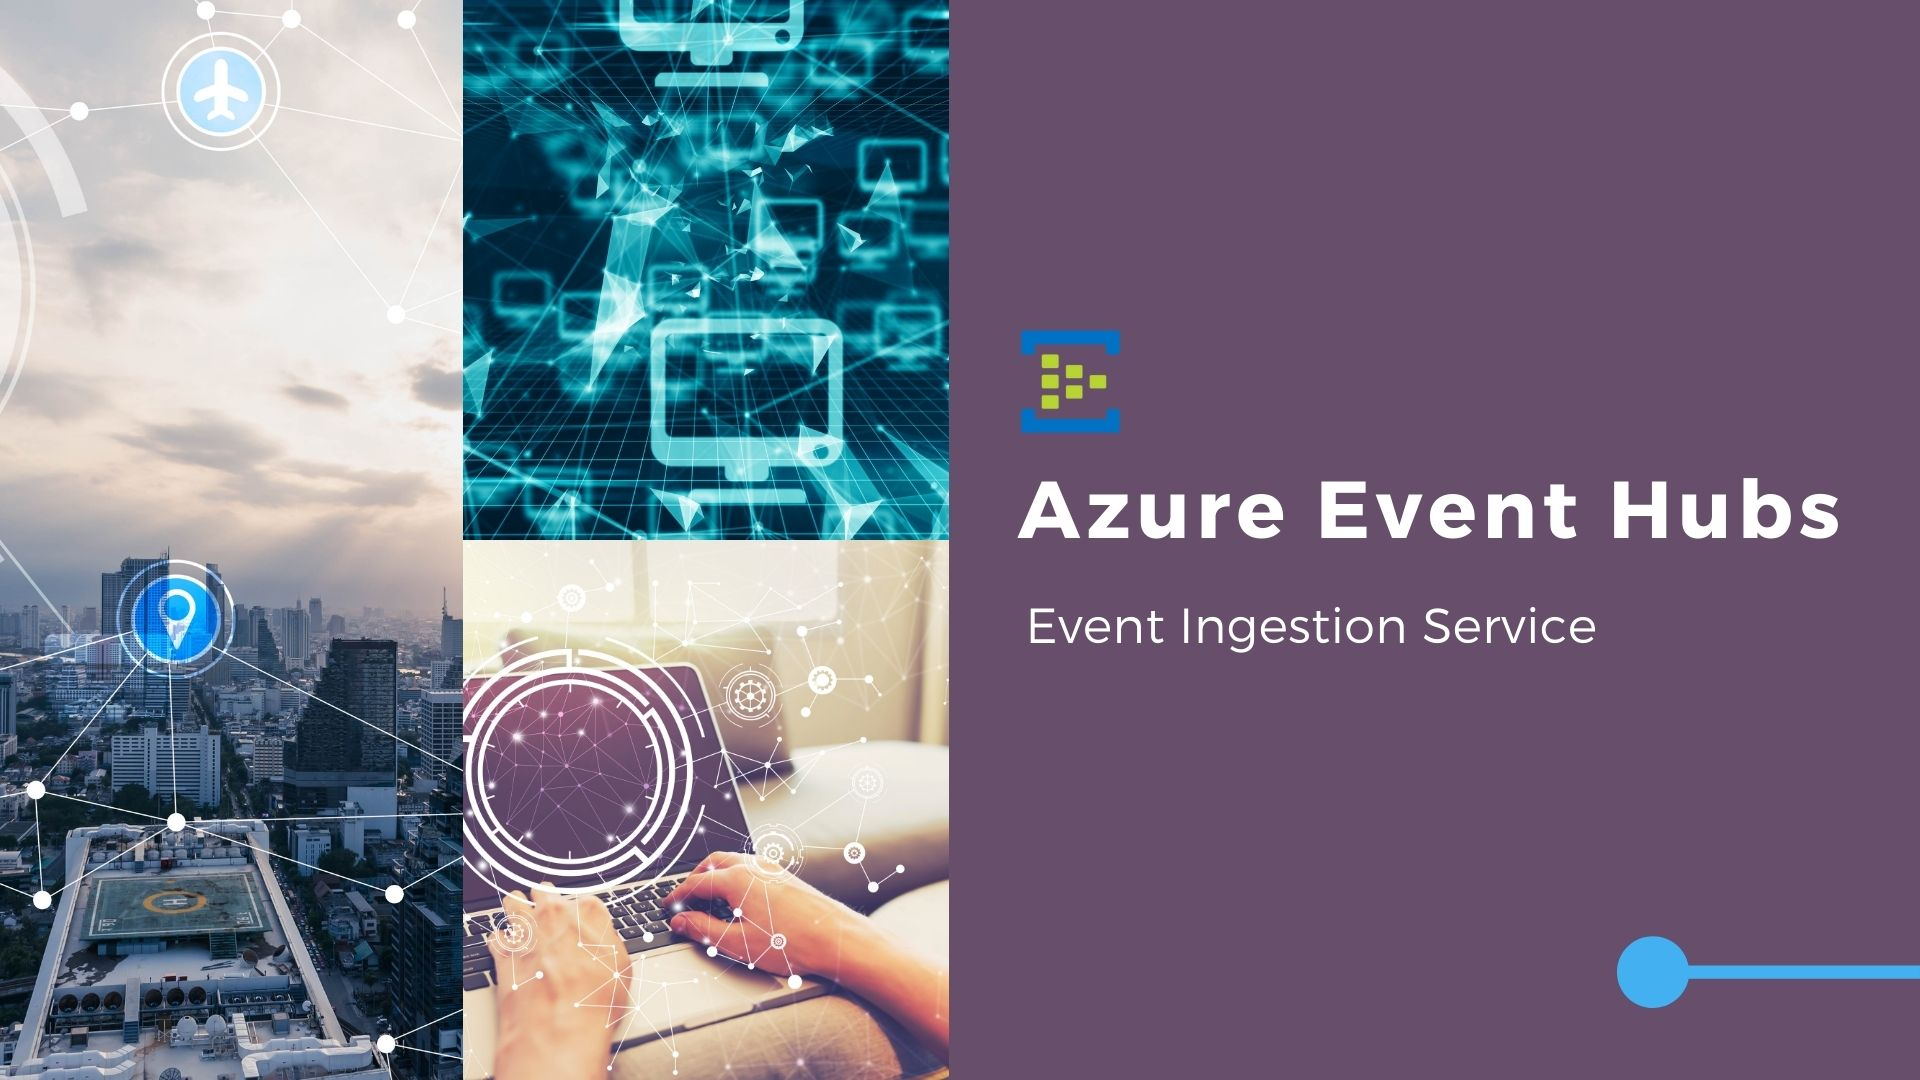 Microsoft Azure Event Hubs Pricing & Features: Event Ingestion Service - thumb image